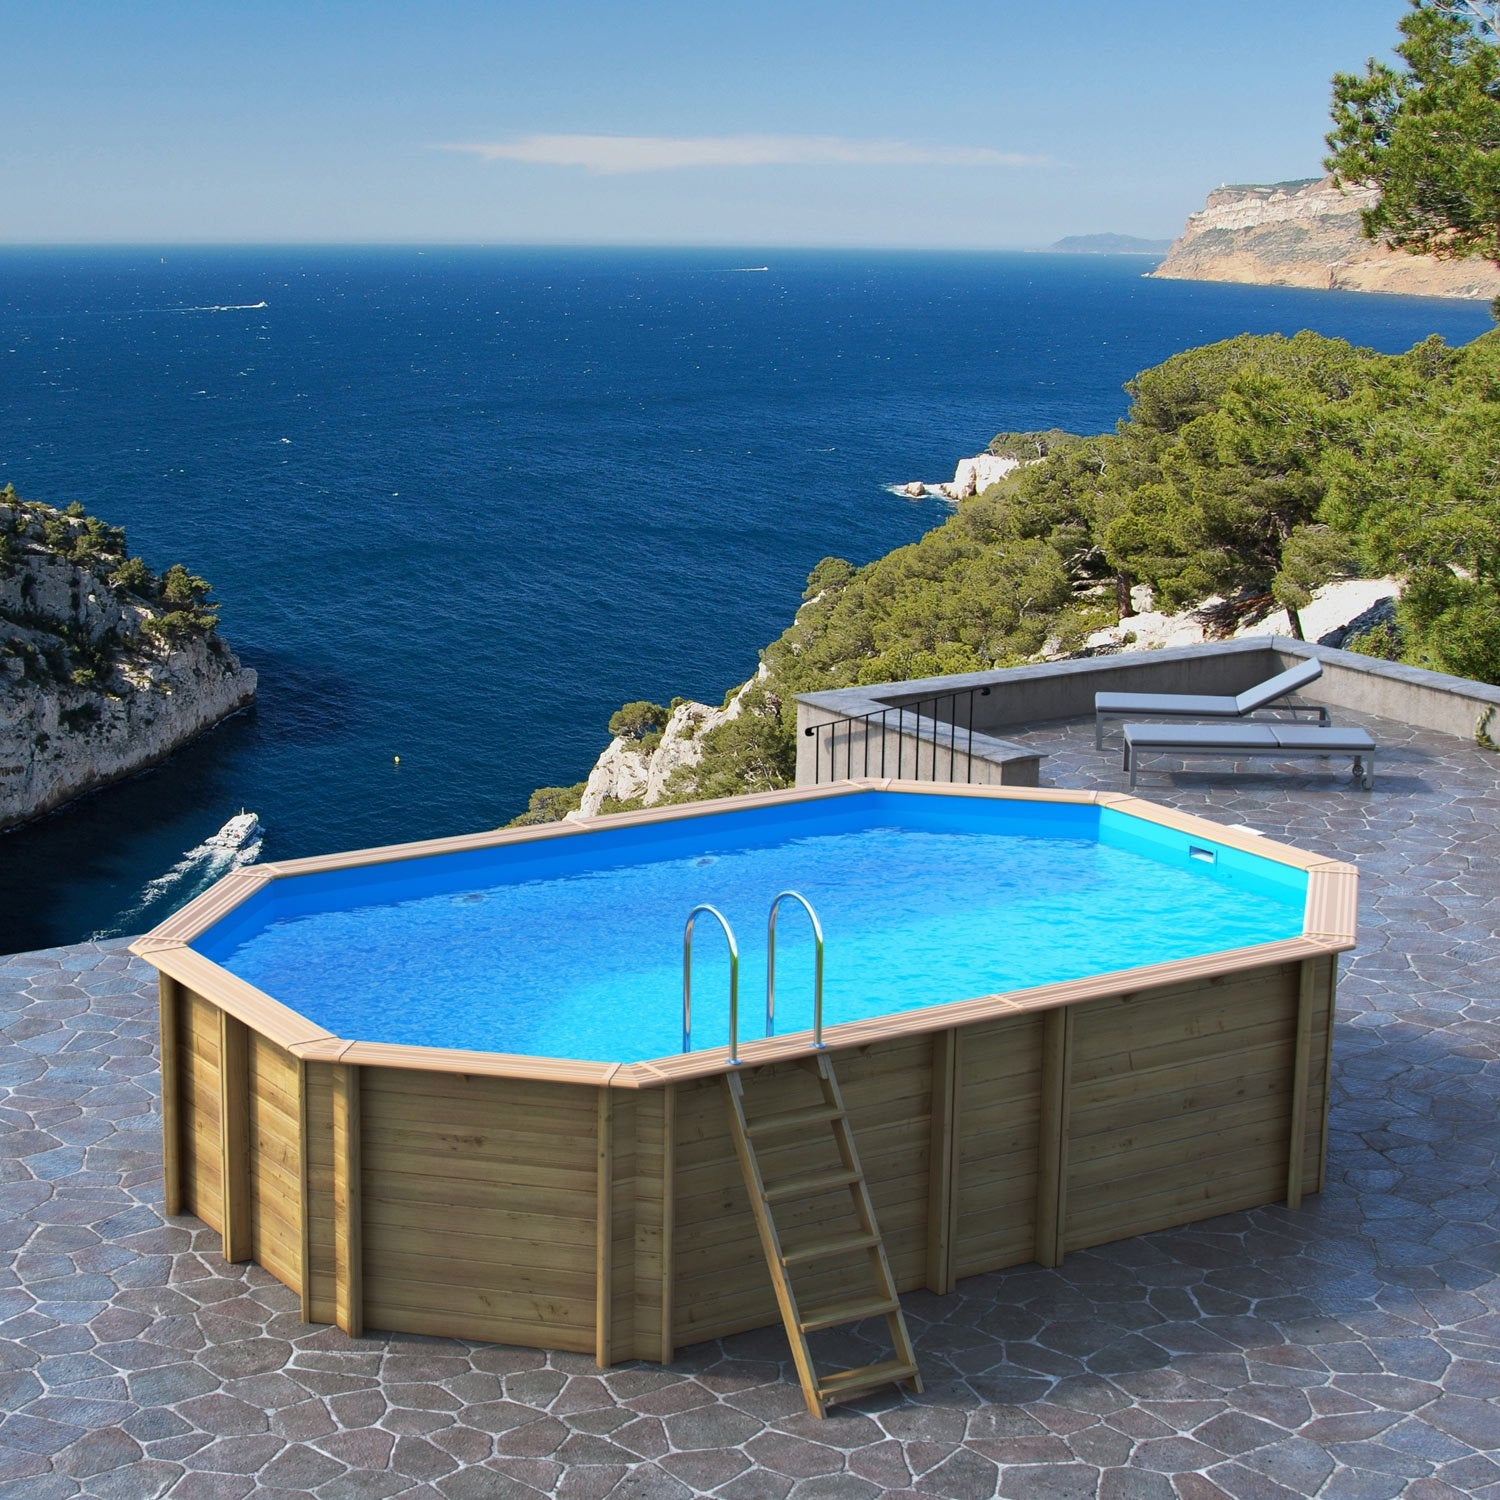 Piscine hors sol bois odyssea proswell by procopi l 6 4 x for Piscine hors sol imposable